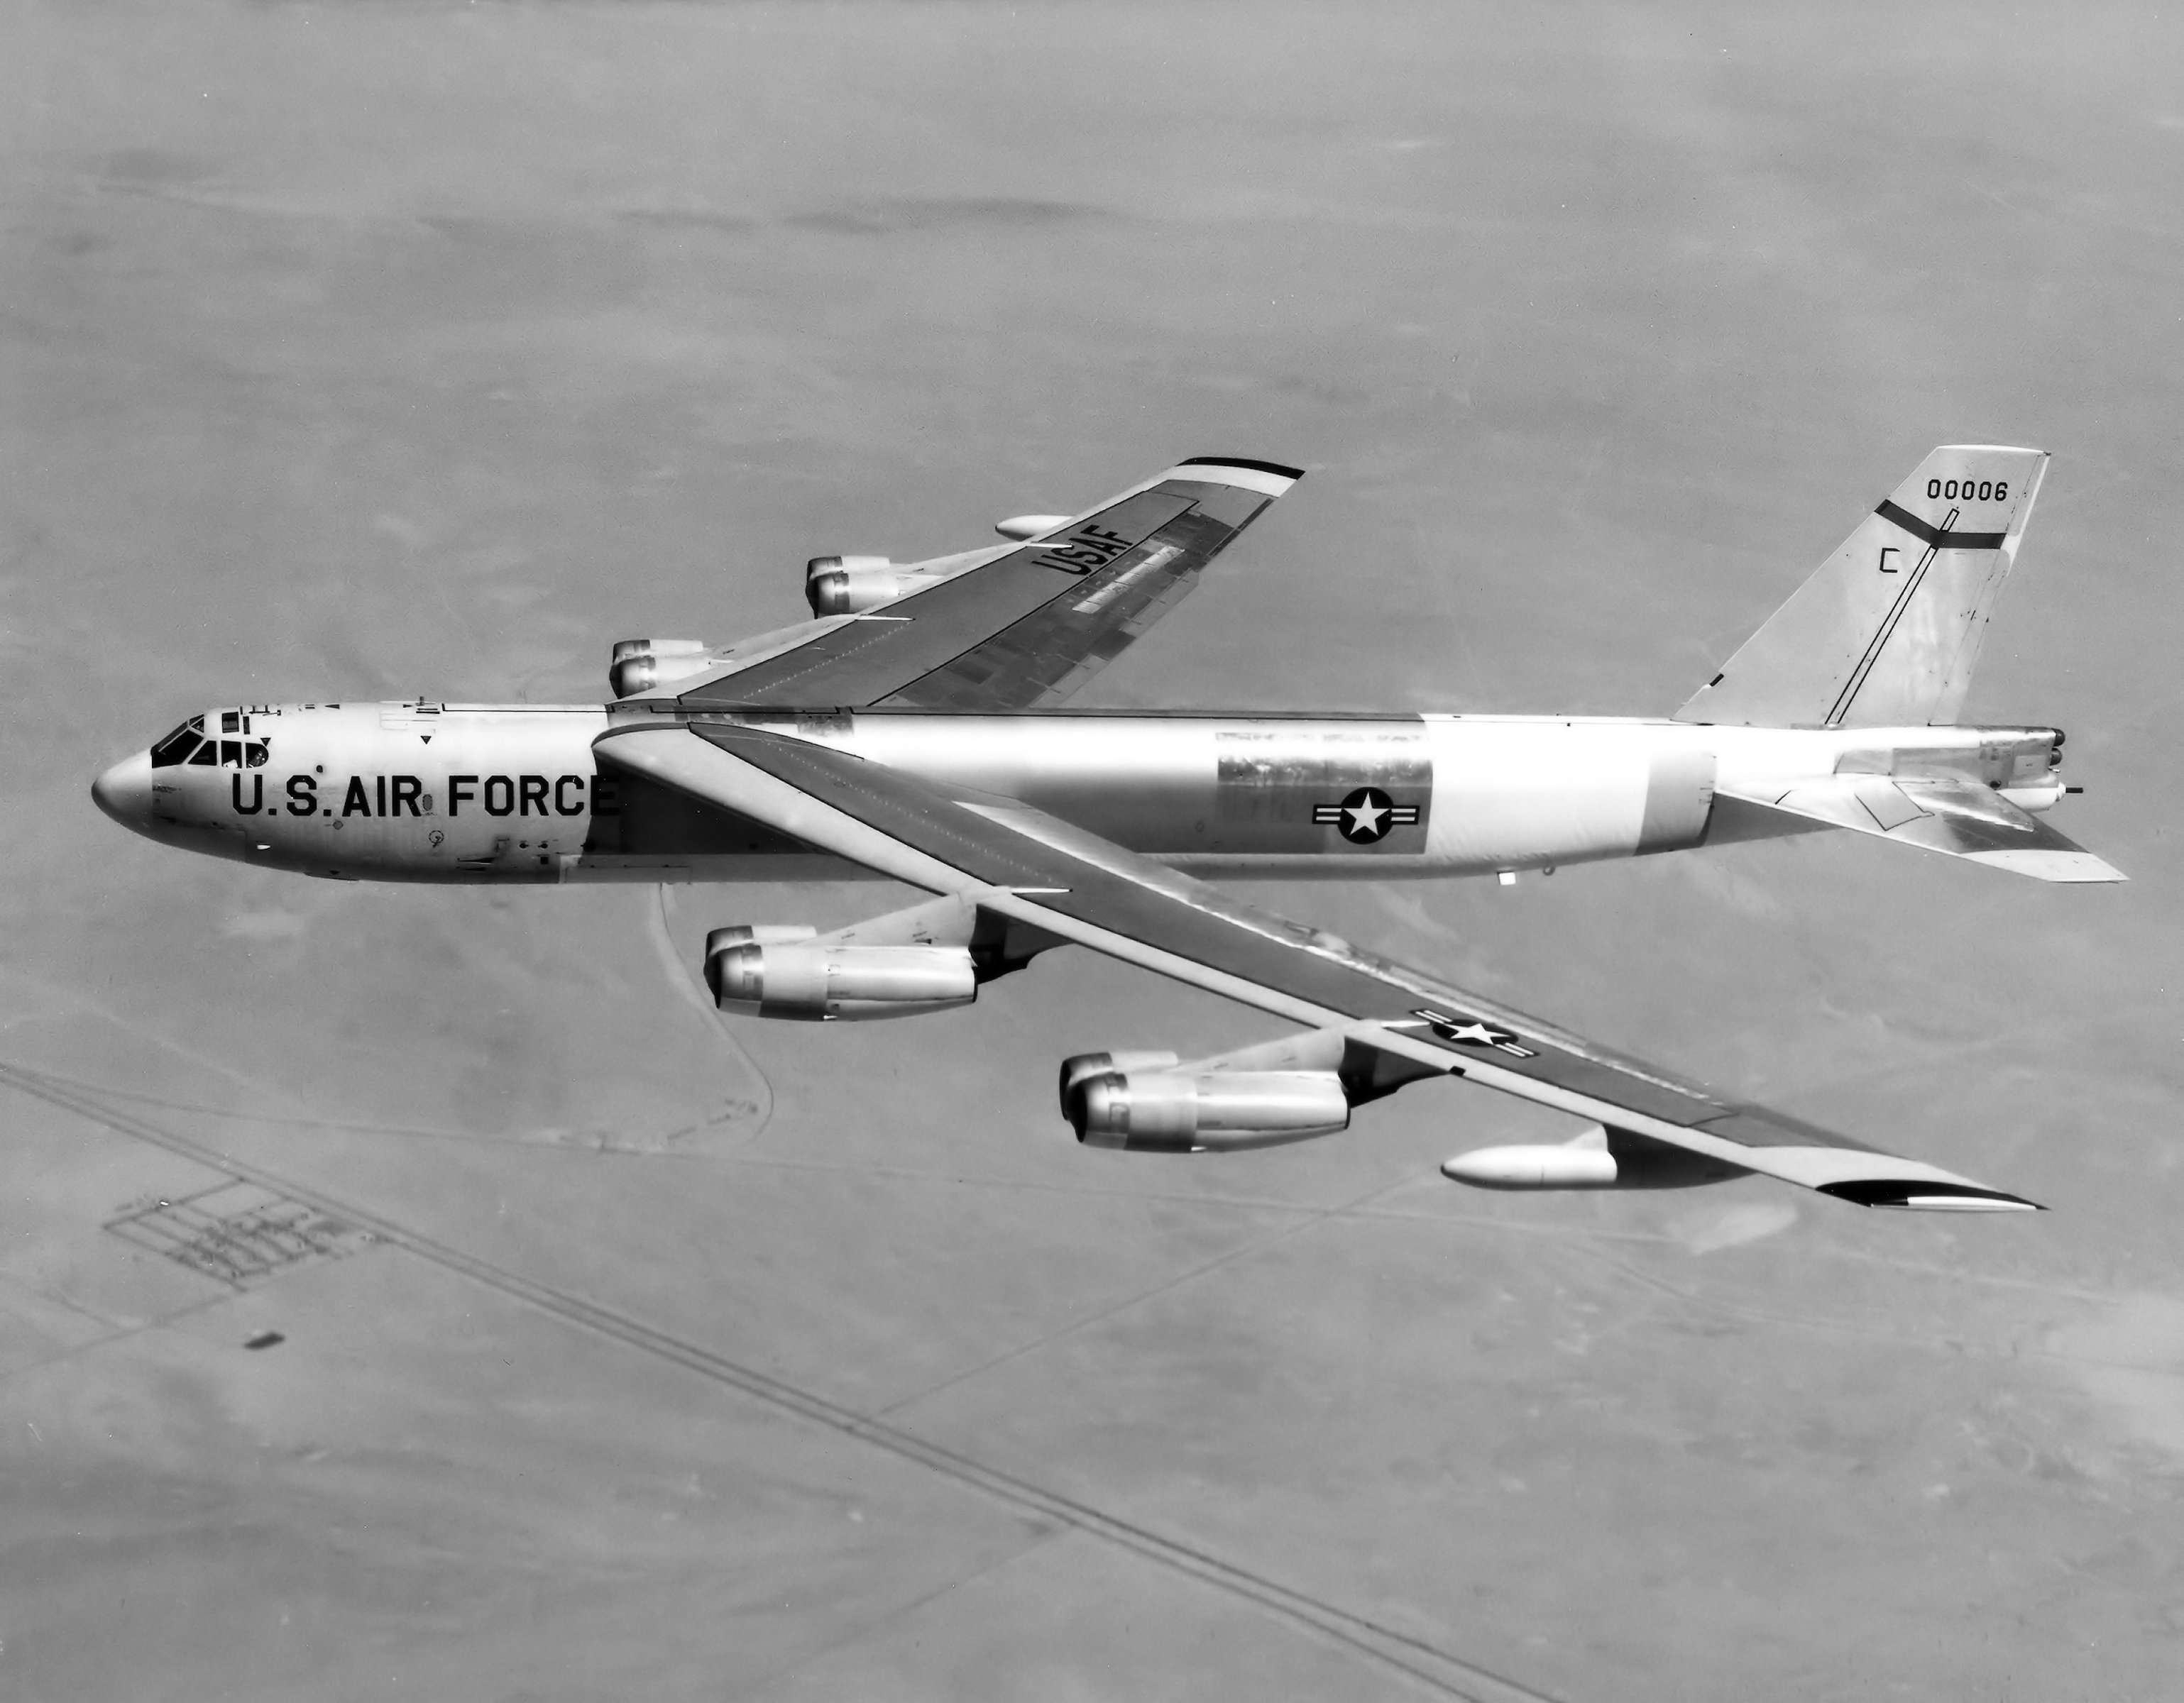 The eight-engine Boeing B-52 Stratofortress exemplified America's global nuclear reach; here is a B-52H (SN 60-0006) during flight testing